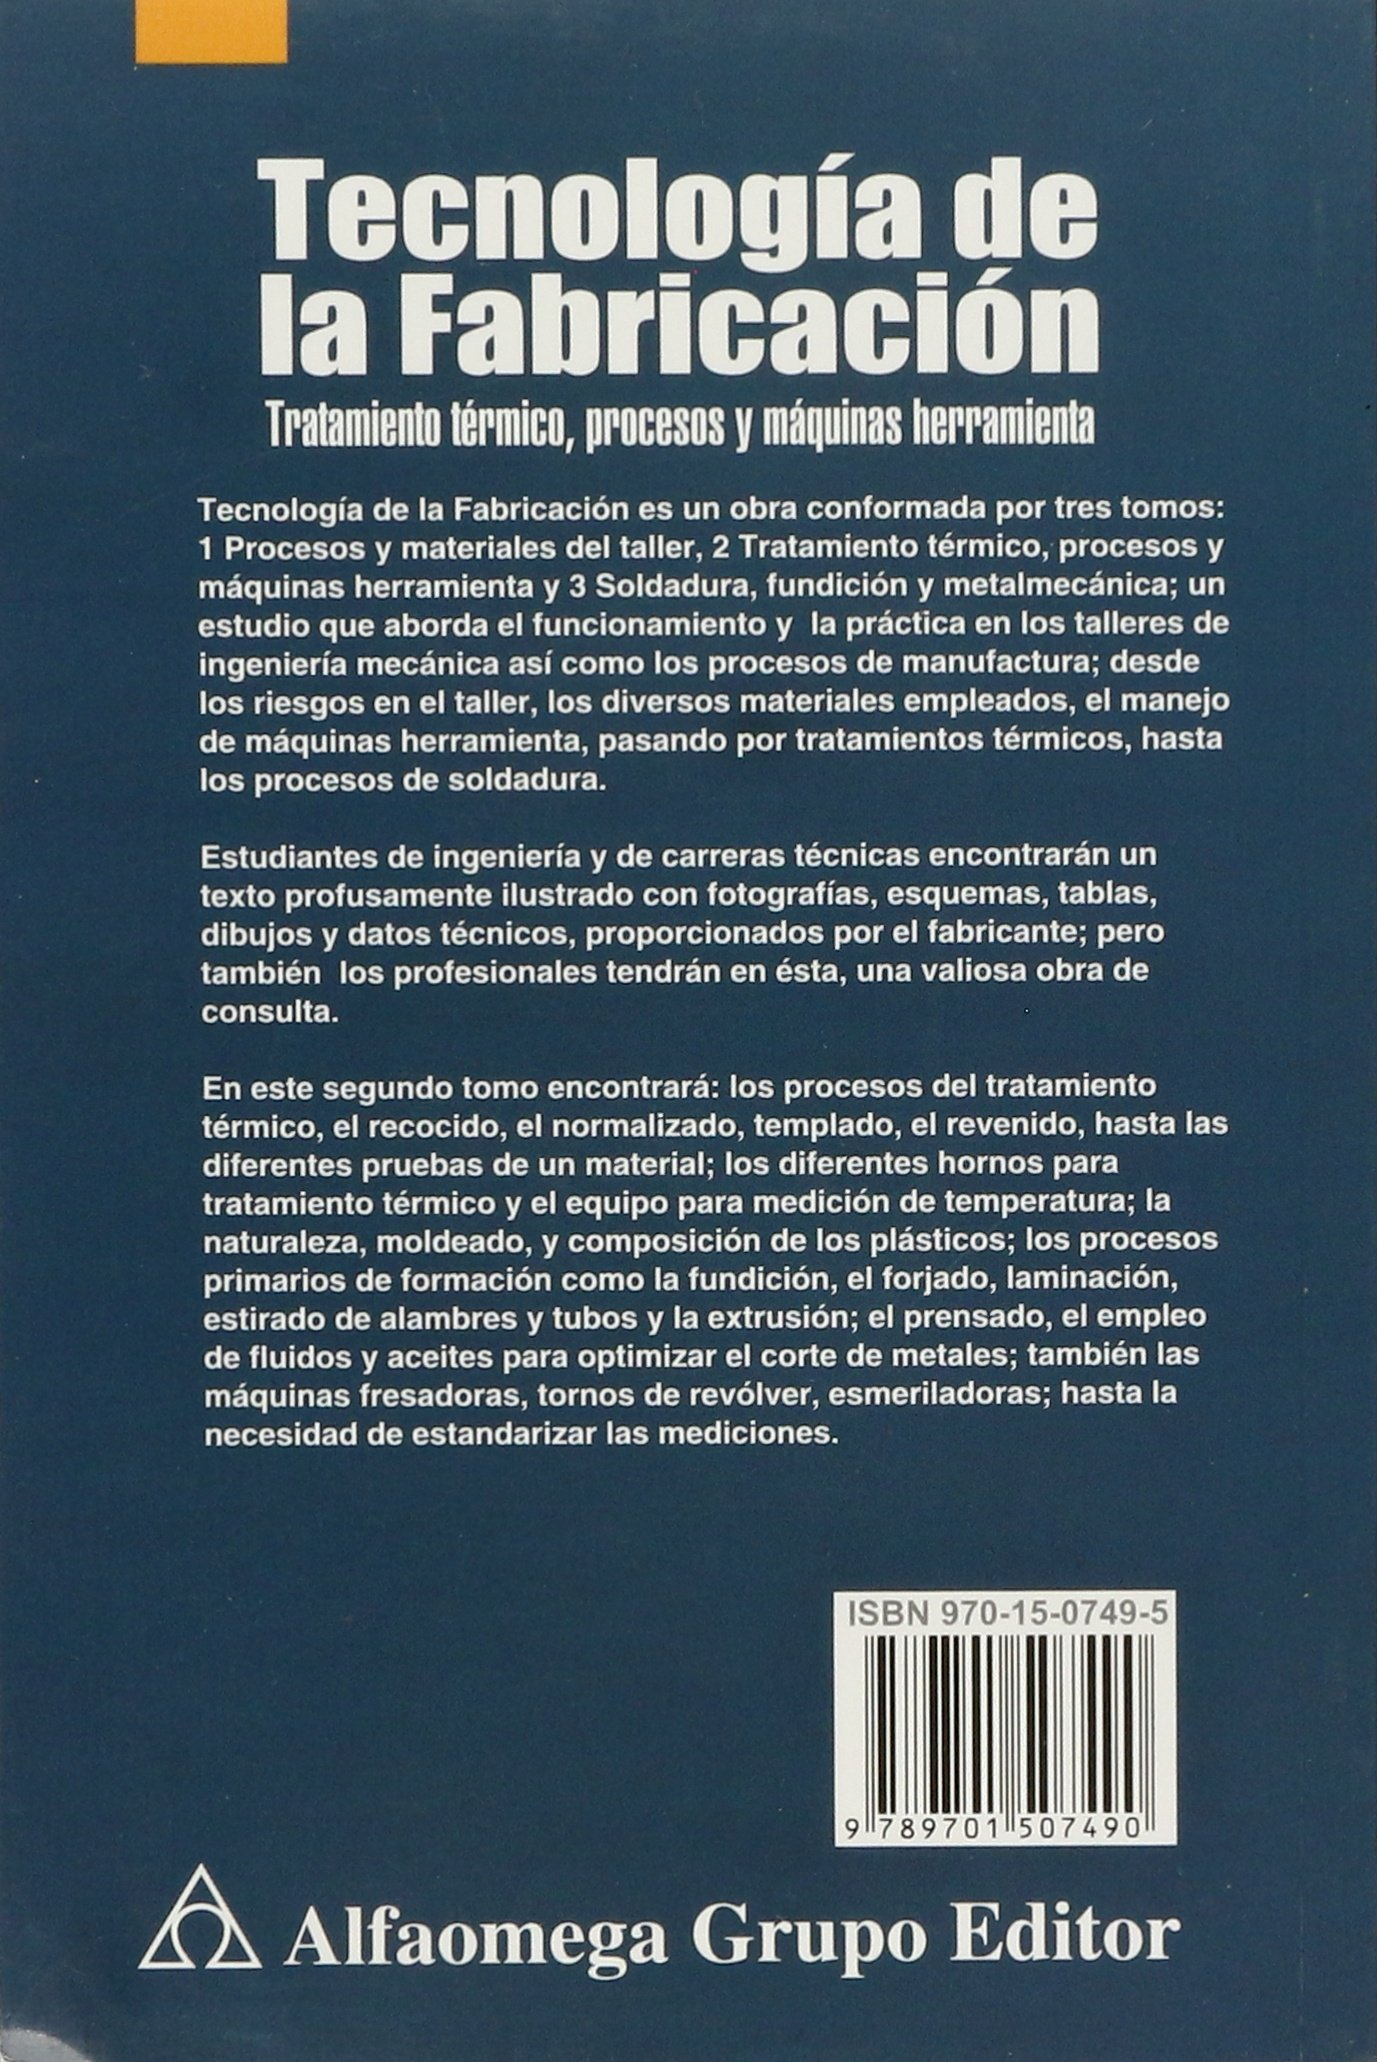 TECNOLOGIA DE LA FABRICACION TOMO 2 by TIMINGS: 9789701507490: Amazon.com: Books